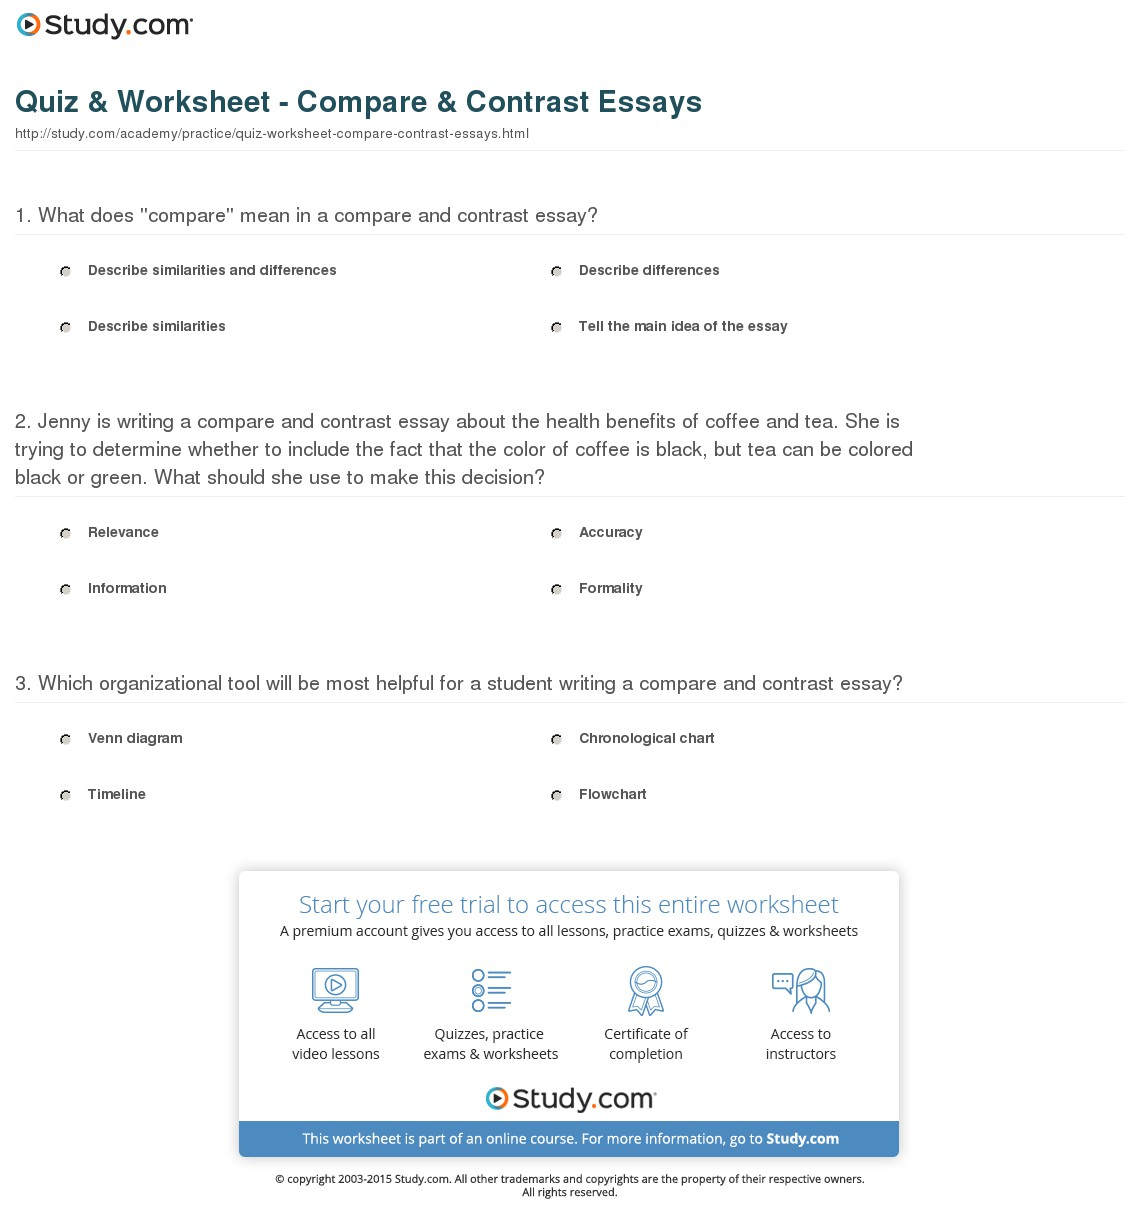 016 Quiz Worksheet Compare Contrast Essays Essay Example Comparing And Unique Contrasting Comparison Sample Pdf Structure University Topics On Health Full